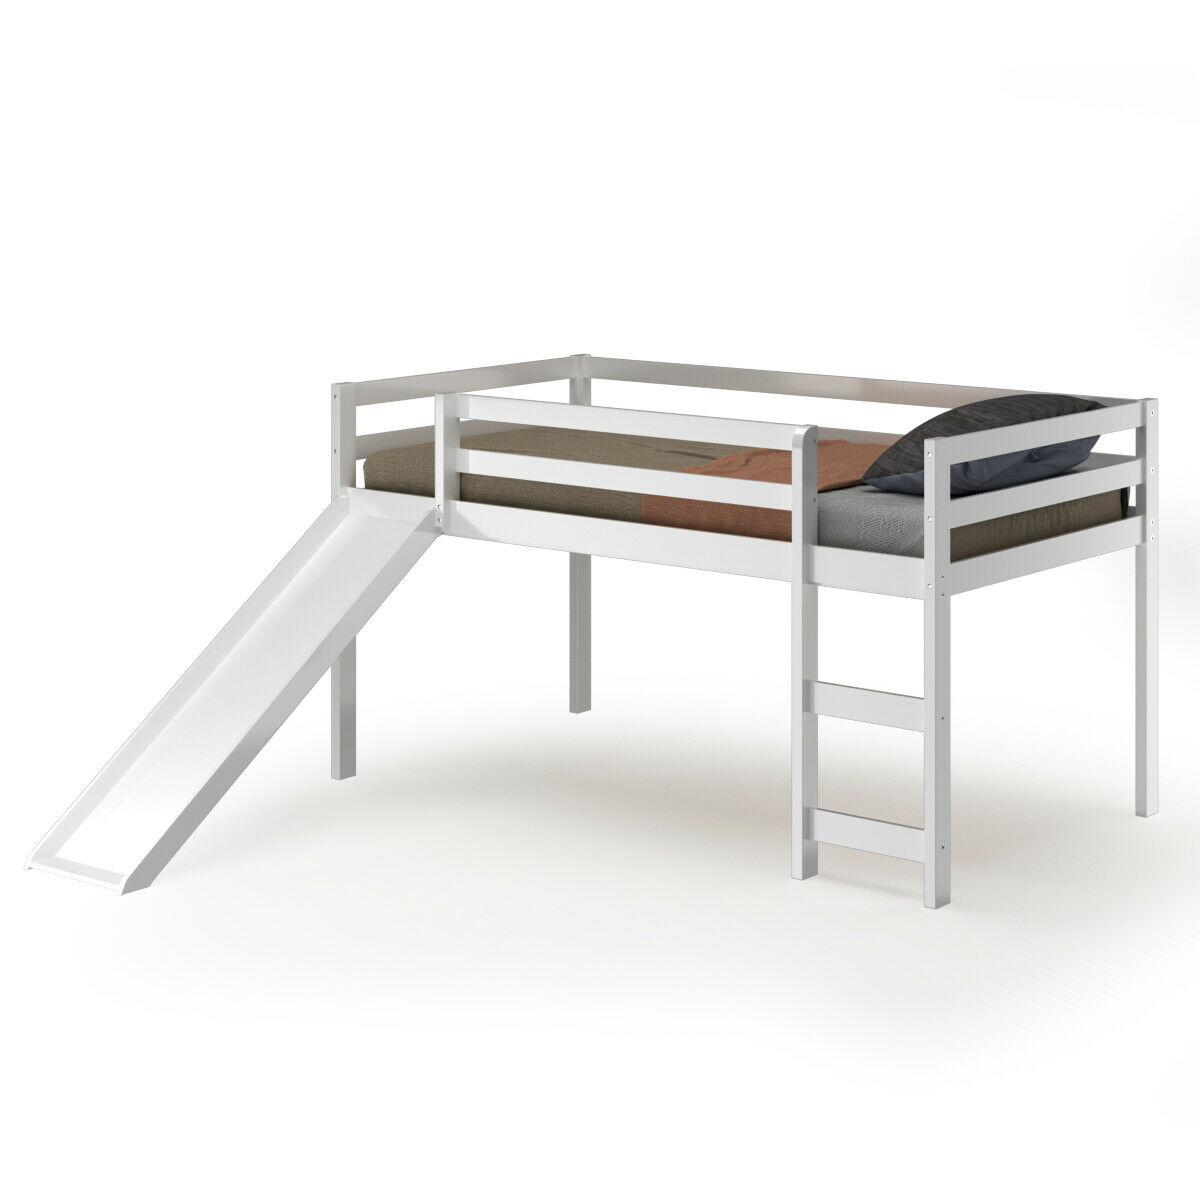 Picture of: Gymax Twin Size Loft Bed With Slide Wood Low Sturdy Loft Bed For Kids Bedroom White Walmart Canada